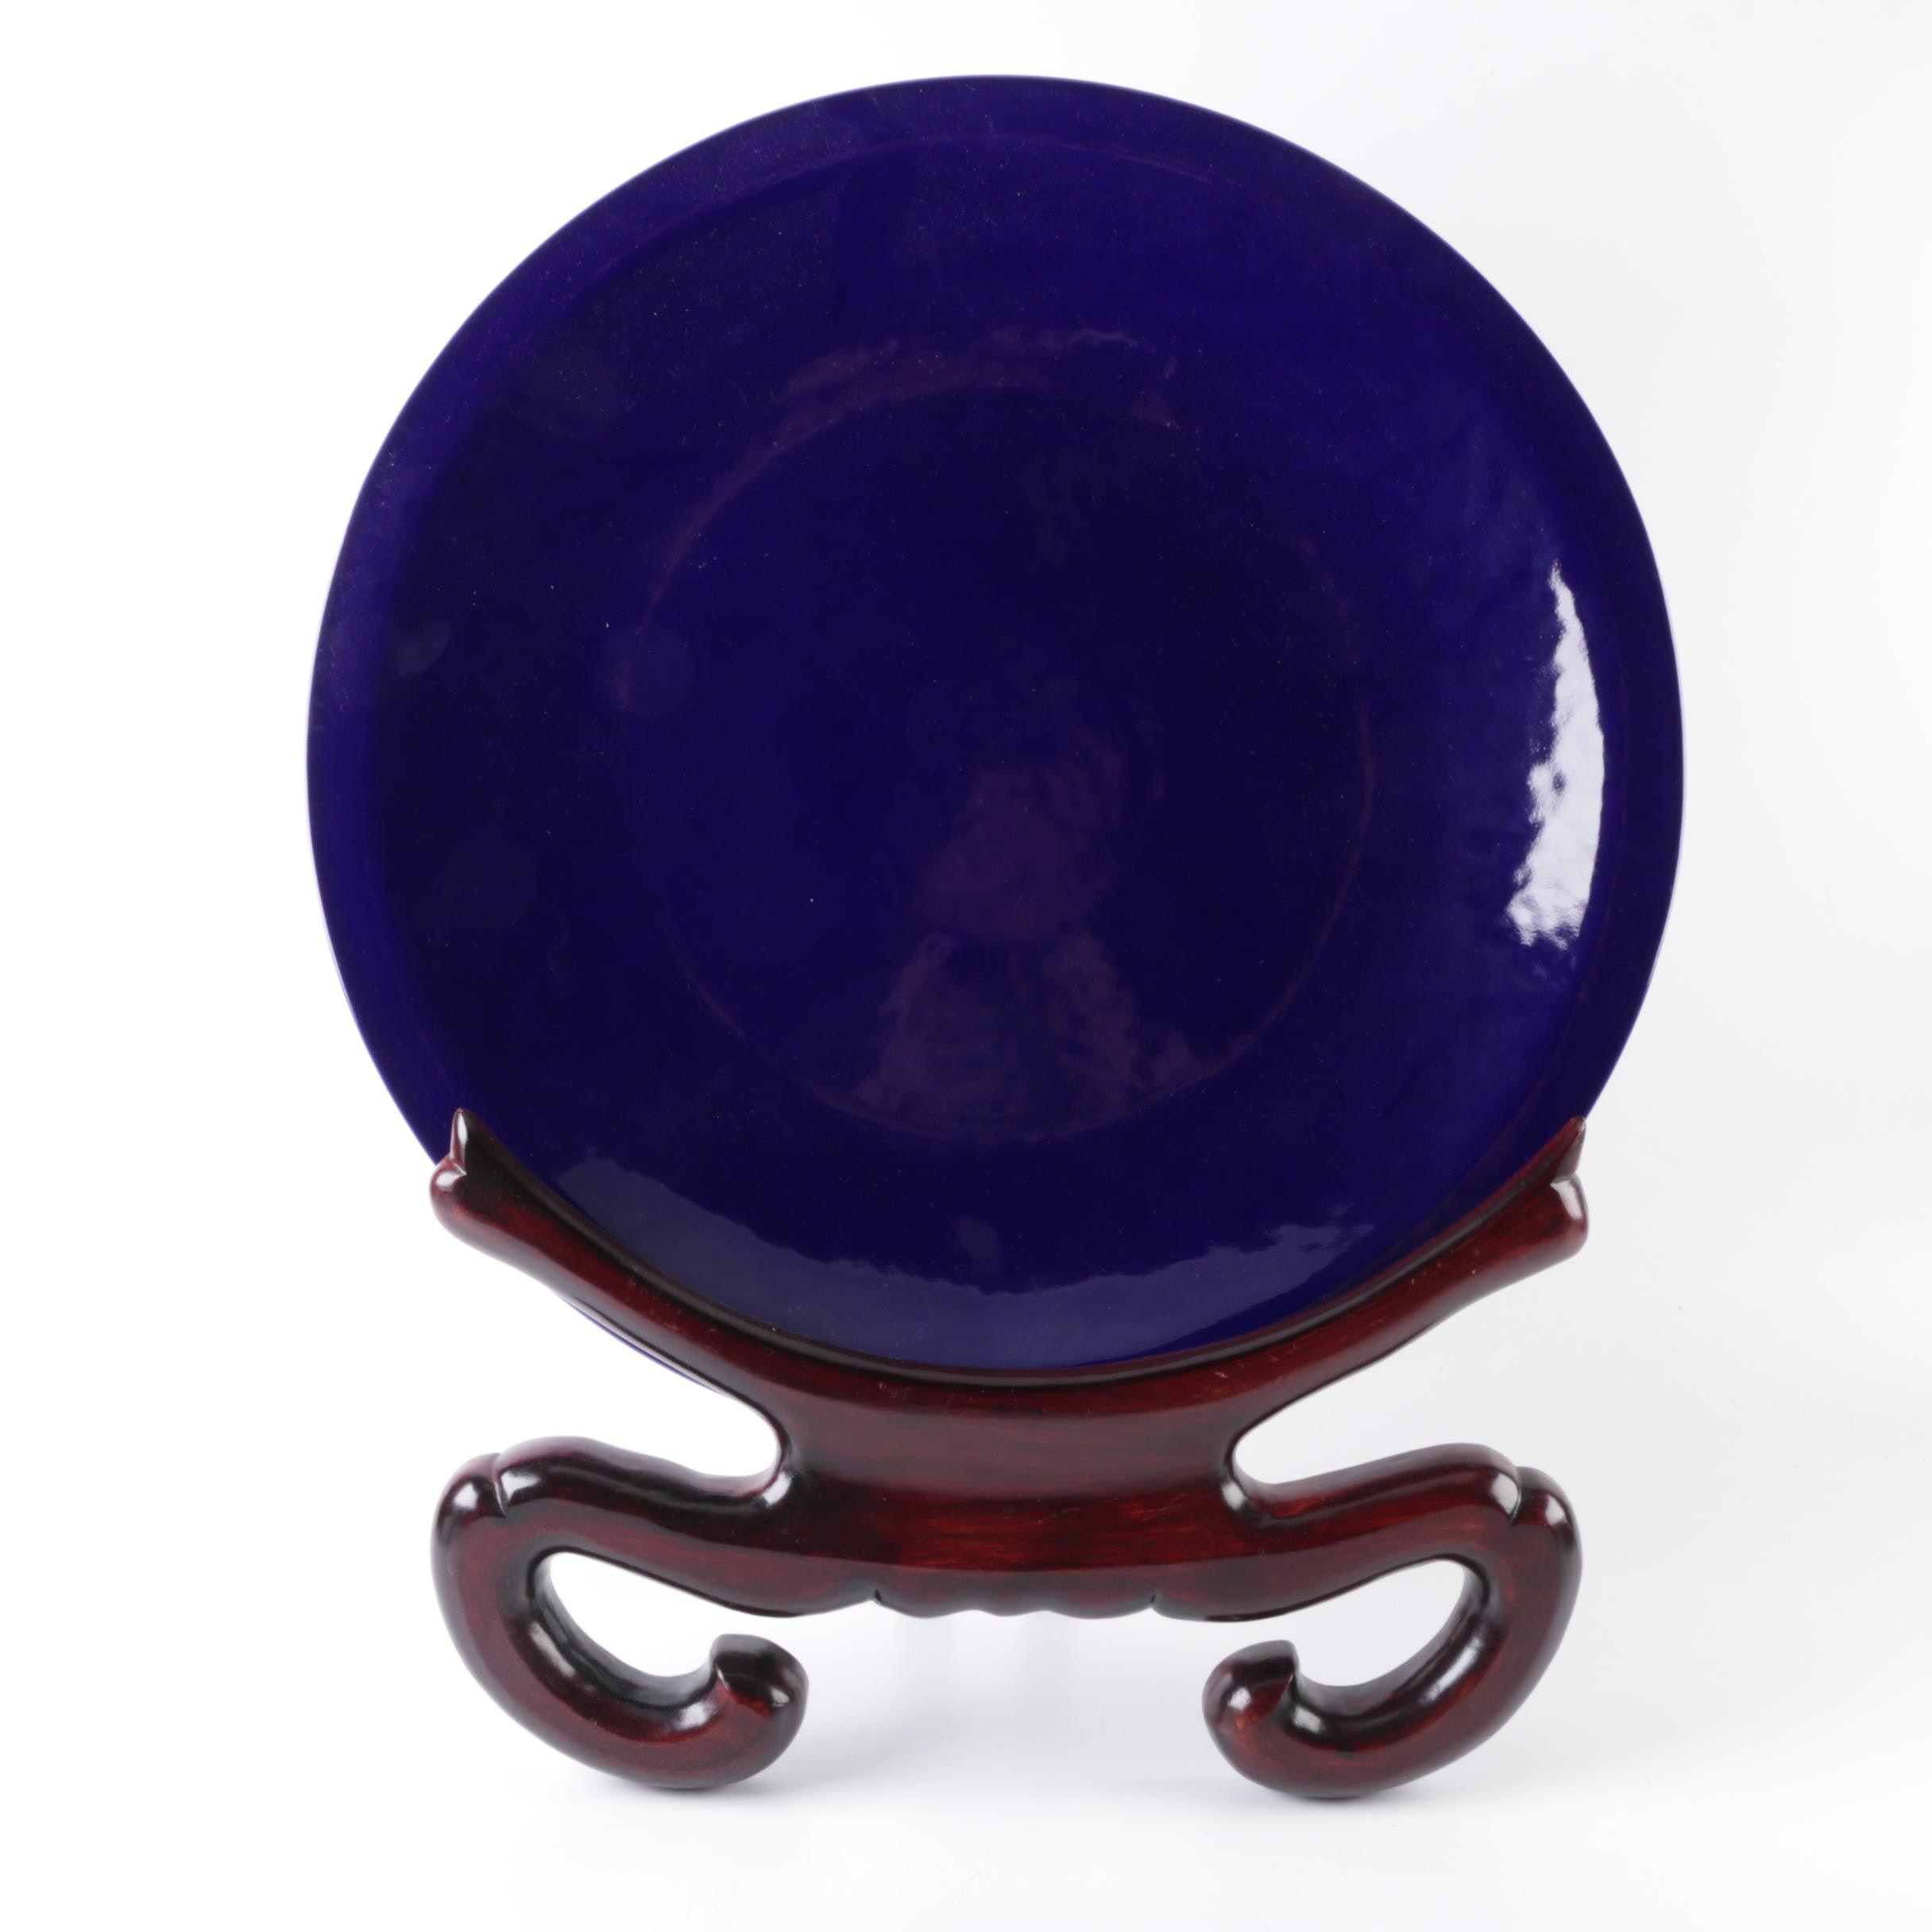 Large Blue Decorative Ceramic Plate and Stand